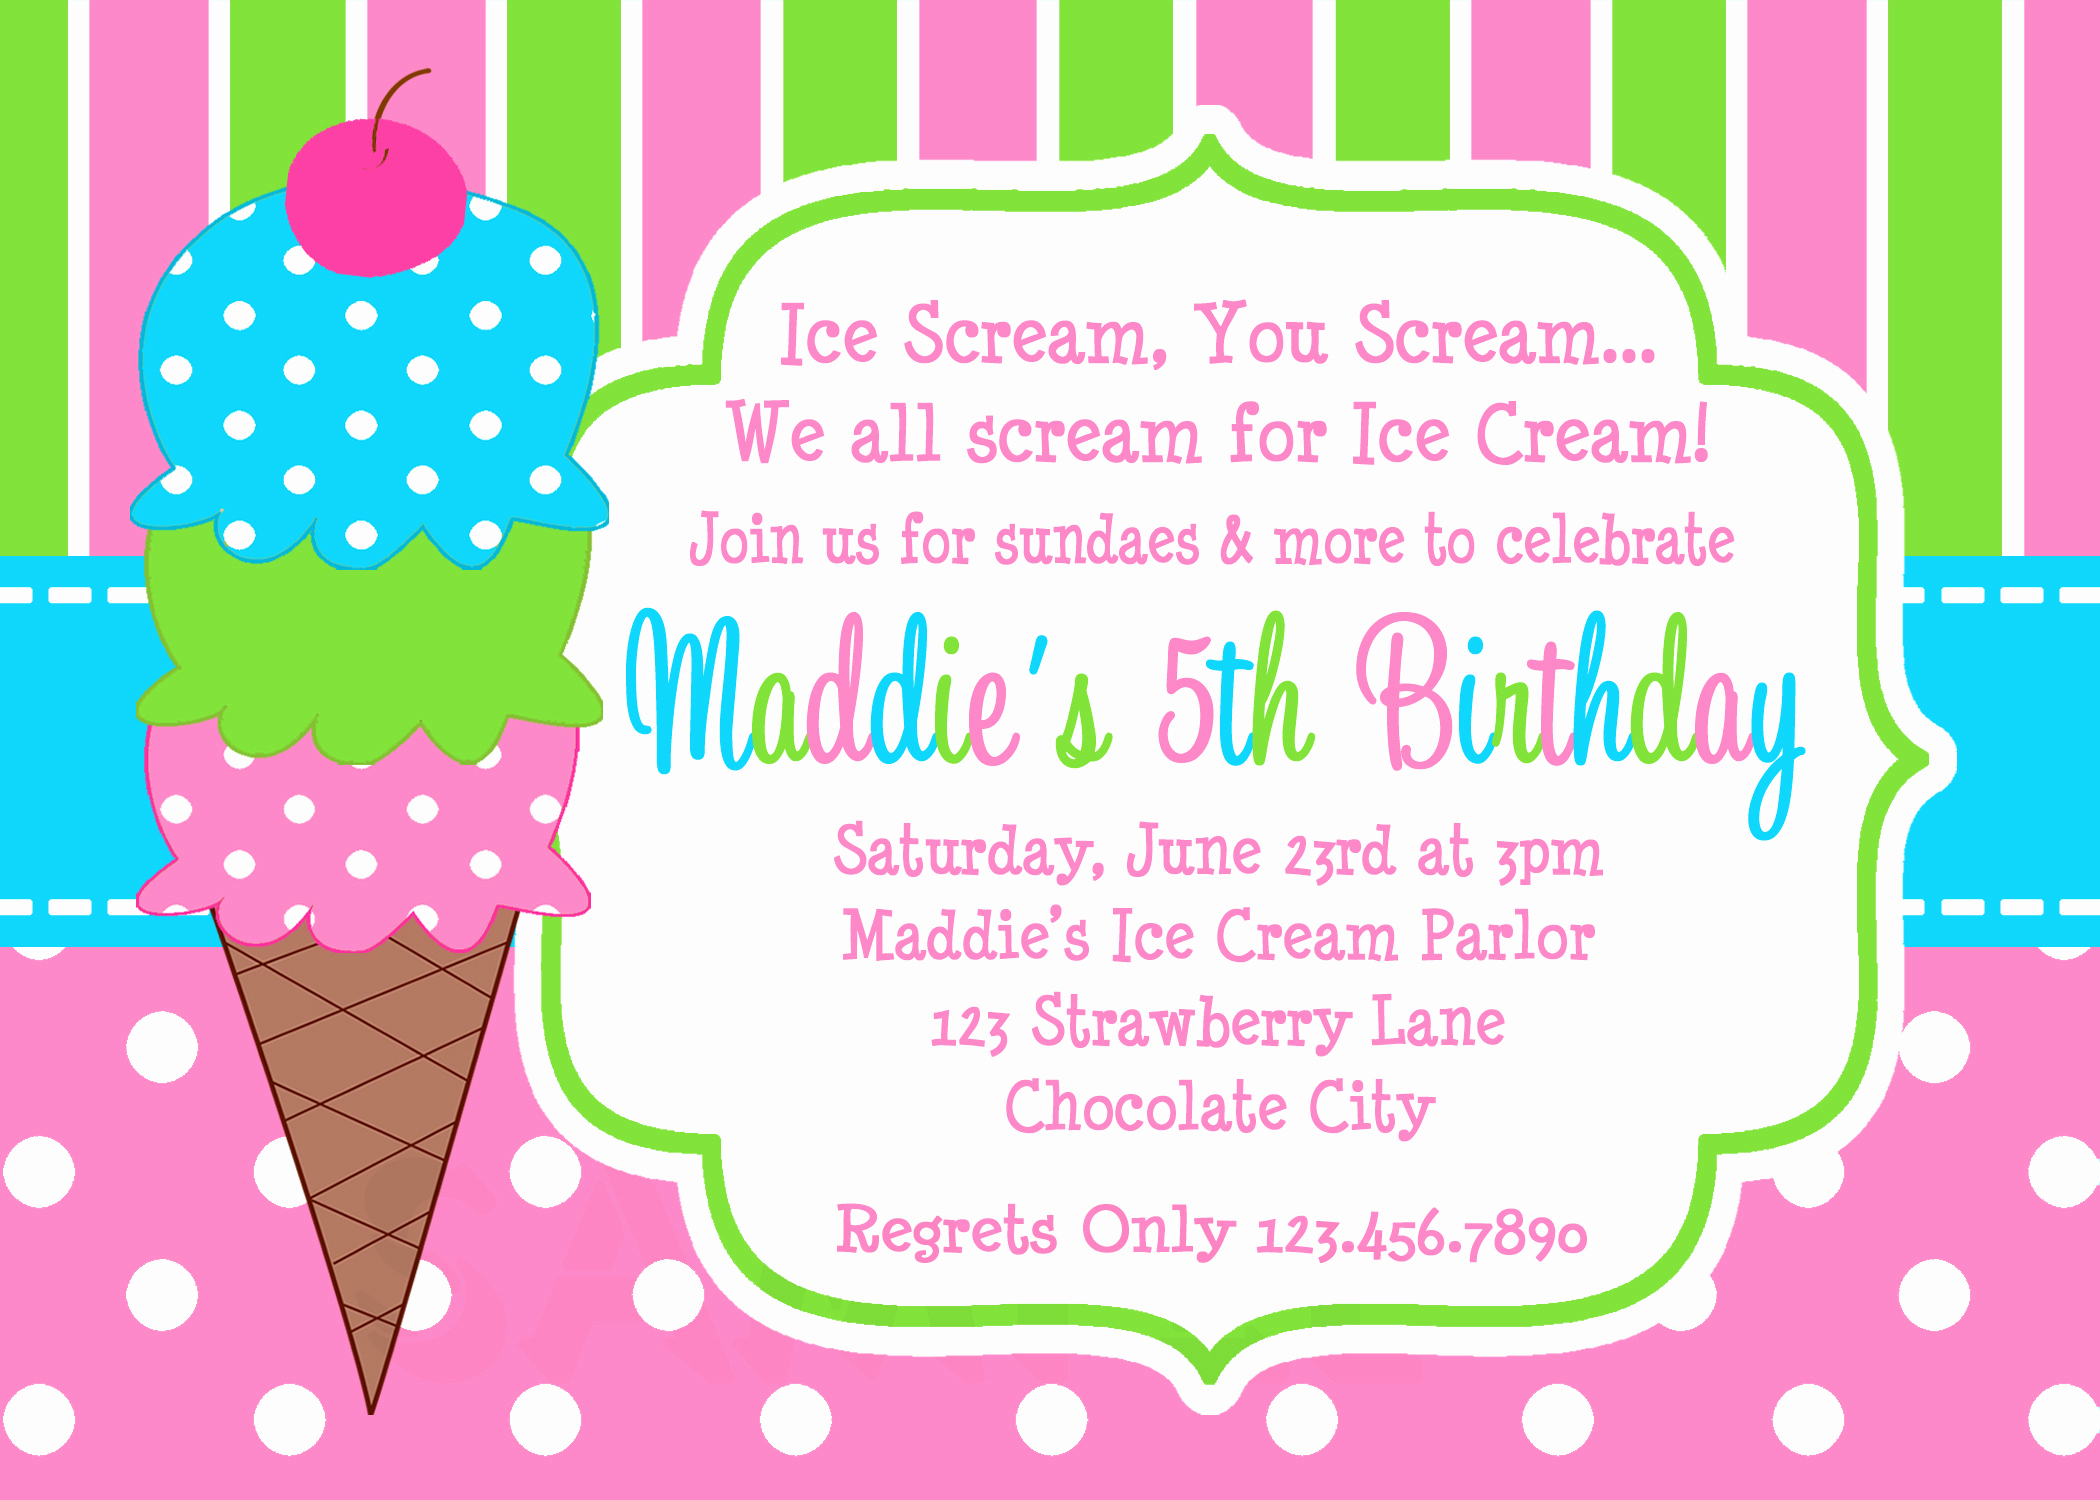 Ice Cream Party Invitation Awesome Printable Birthday Invitations Girls Ice Cream Party